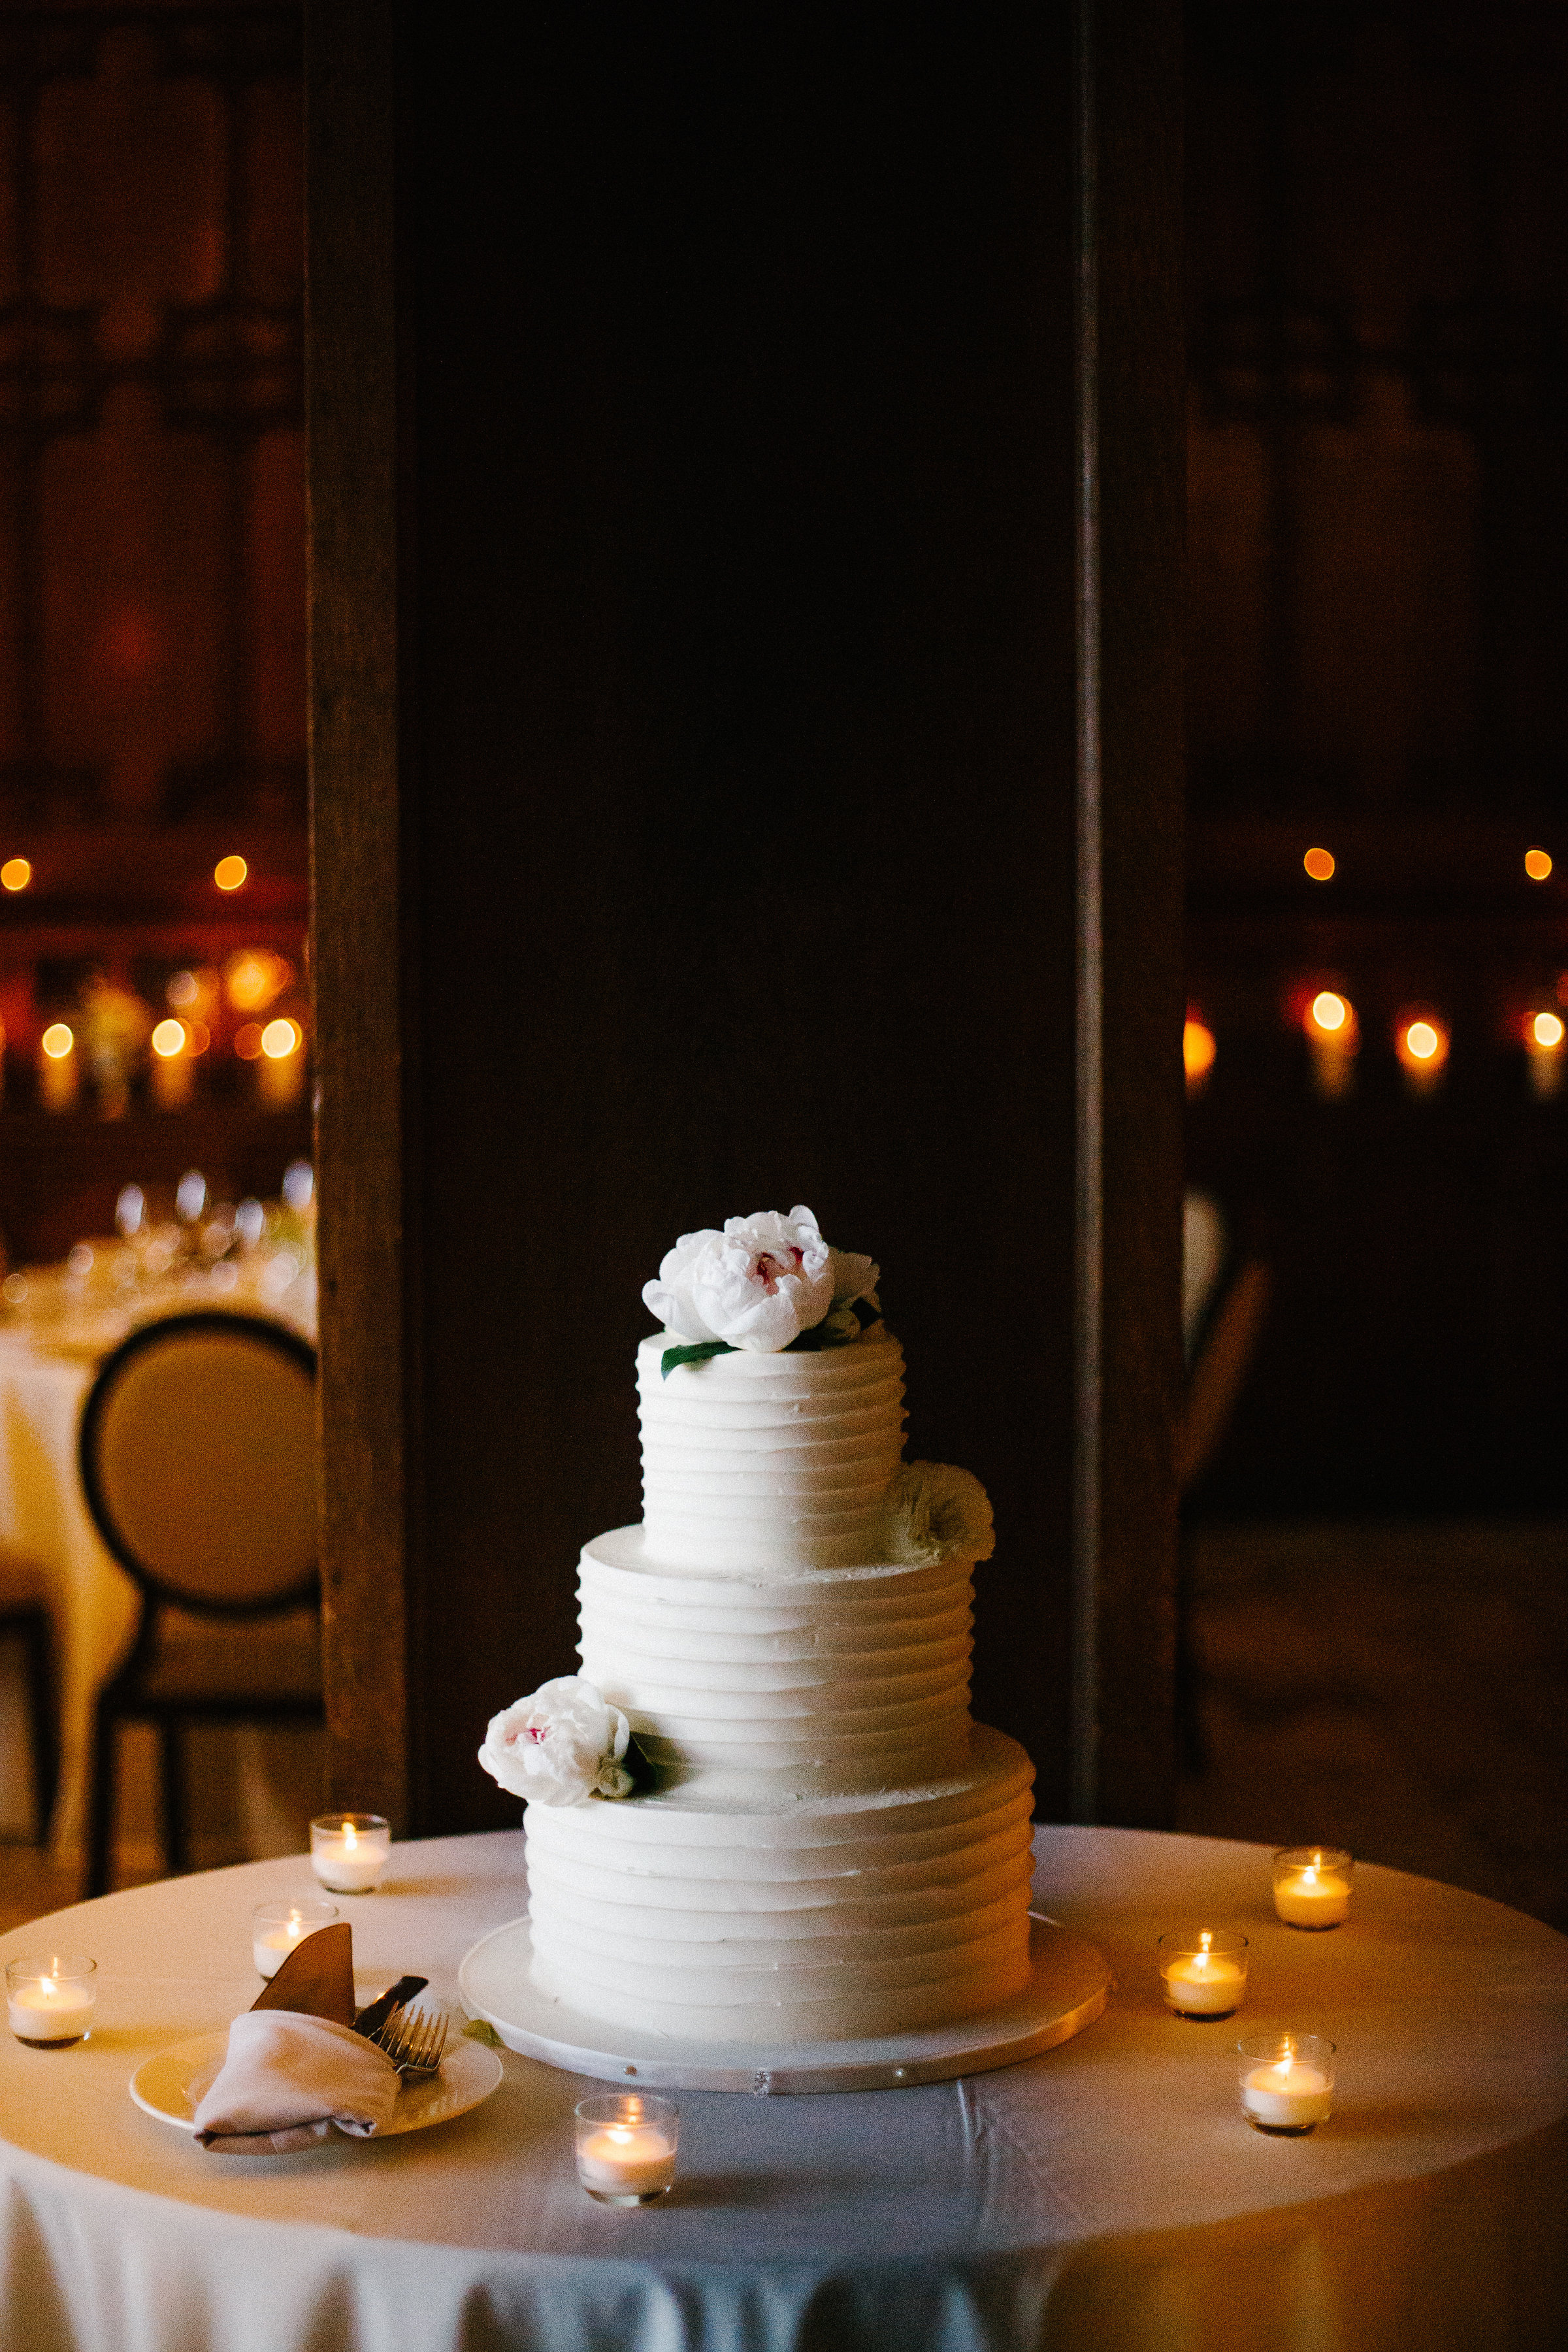 Fleur-Inc-Wedding-Chicago-Athletic-Association-Kina-Wicks-Photography-Liven-It-Up-Cake-Flowers-Peonies-